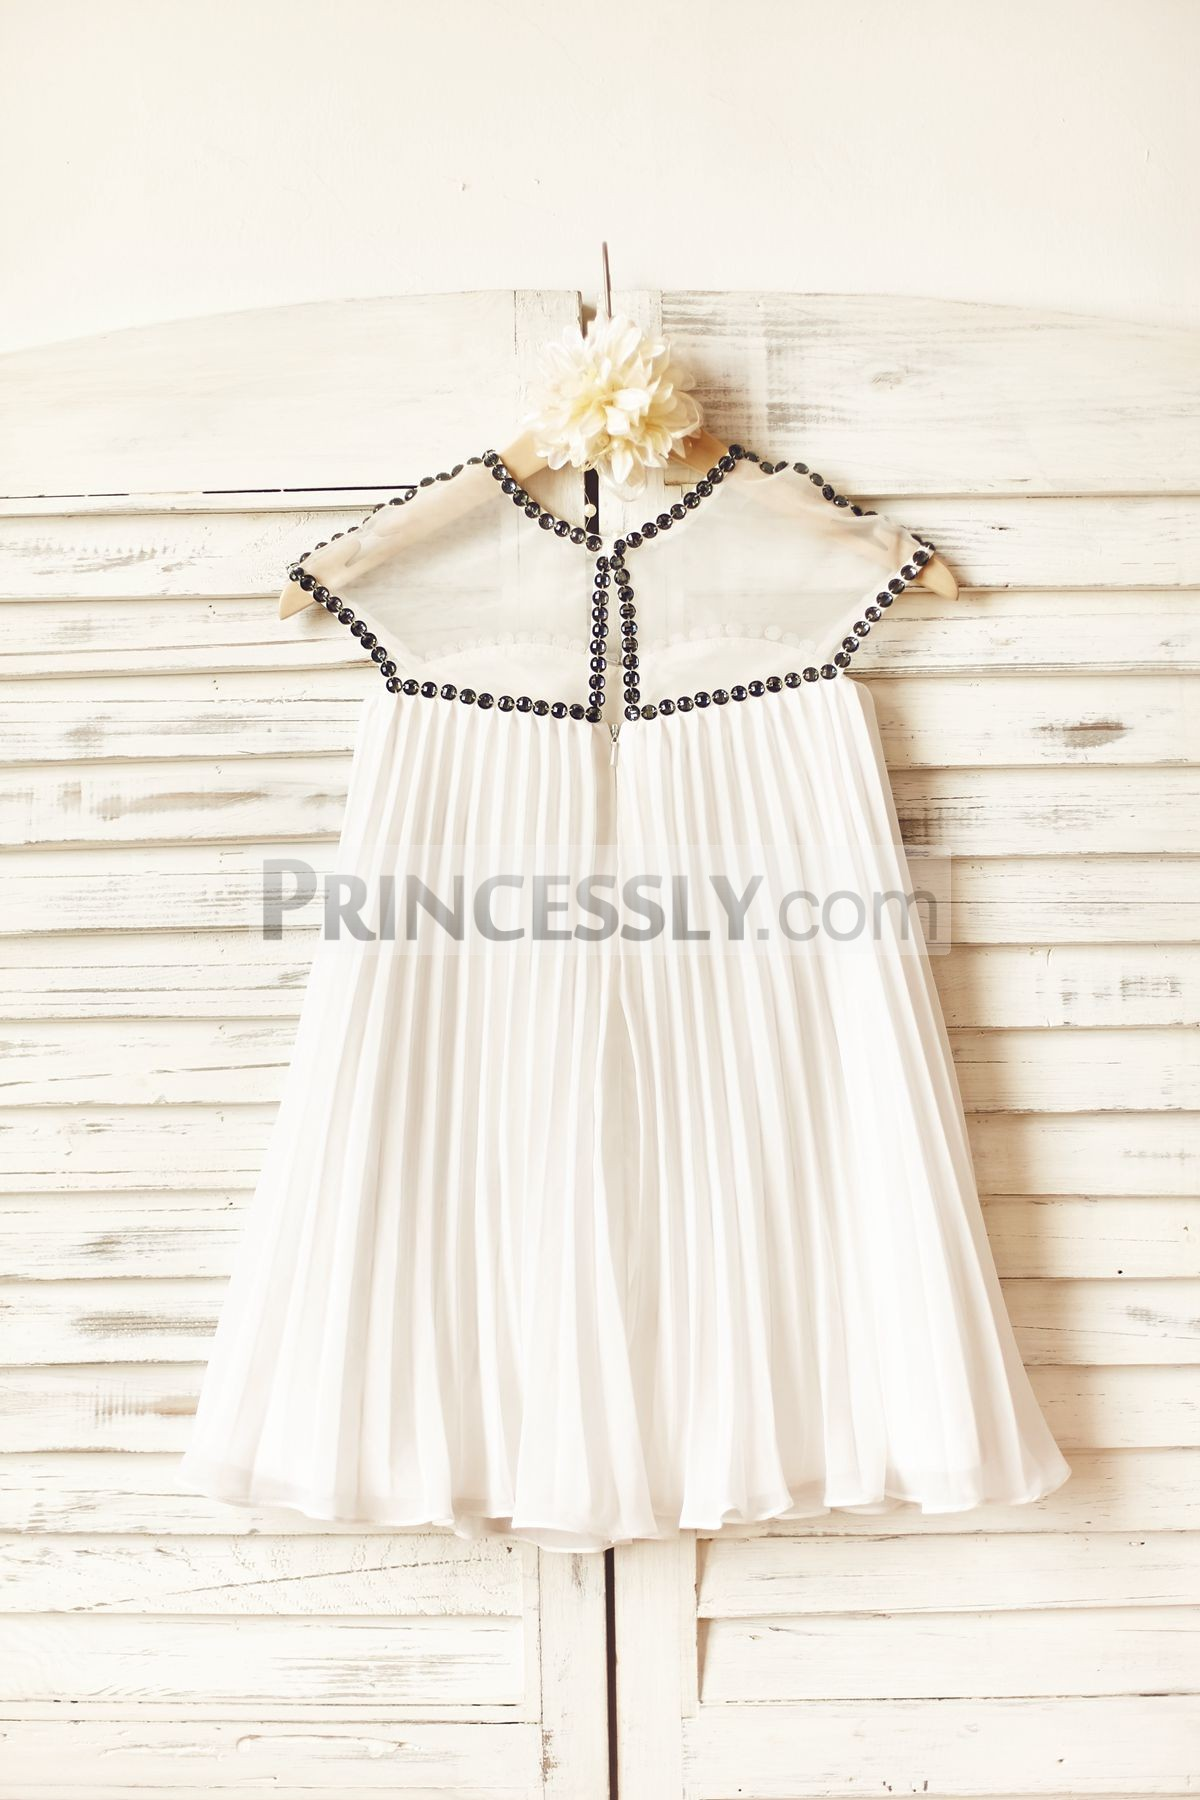 Slit on back pleated ivory chiffon boho wedding baby girl dress